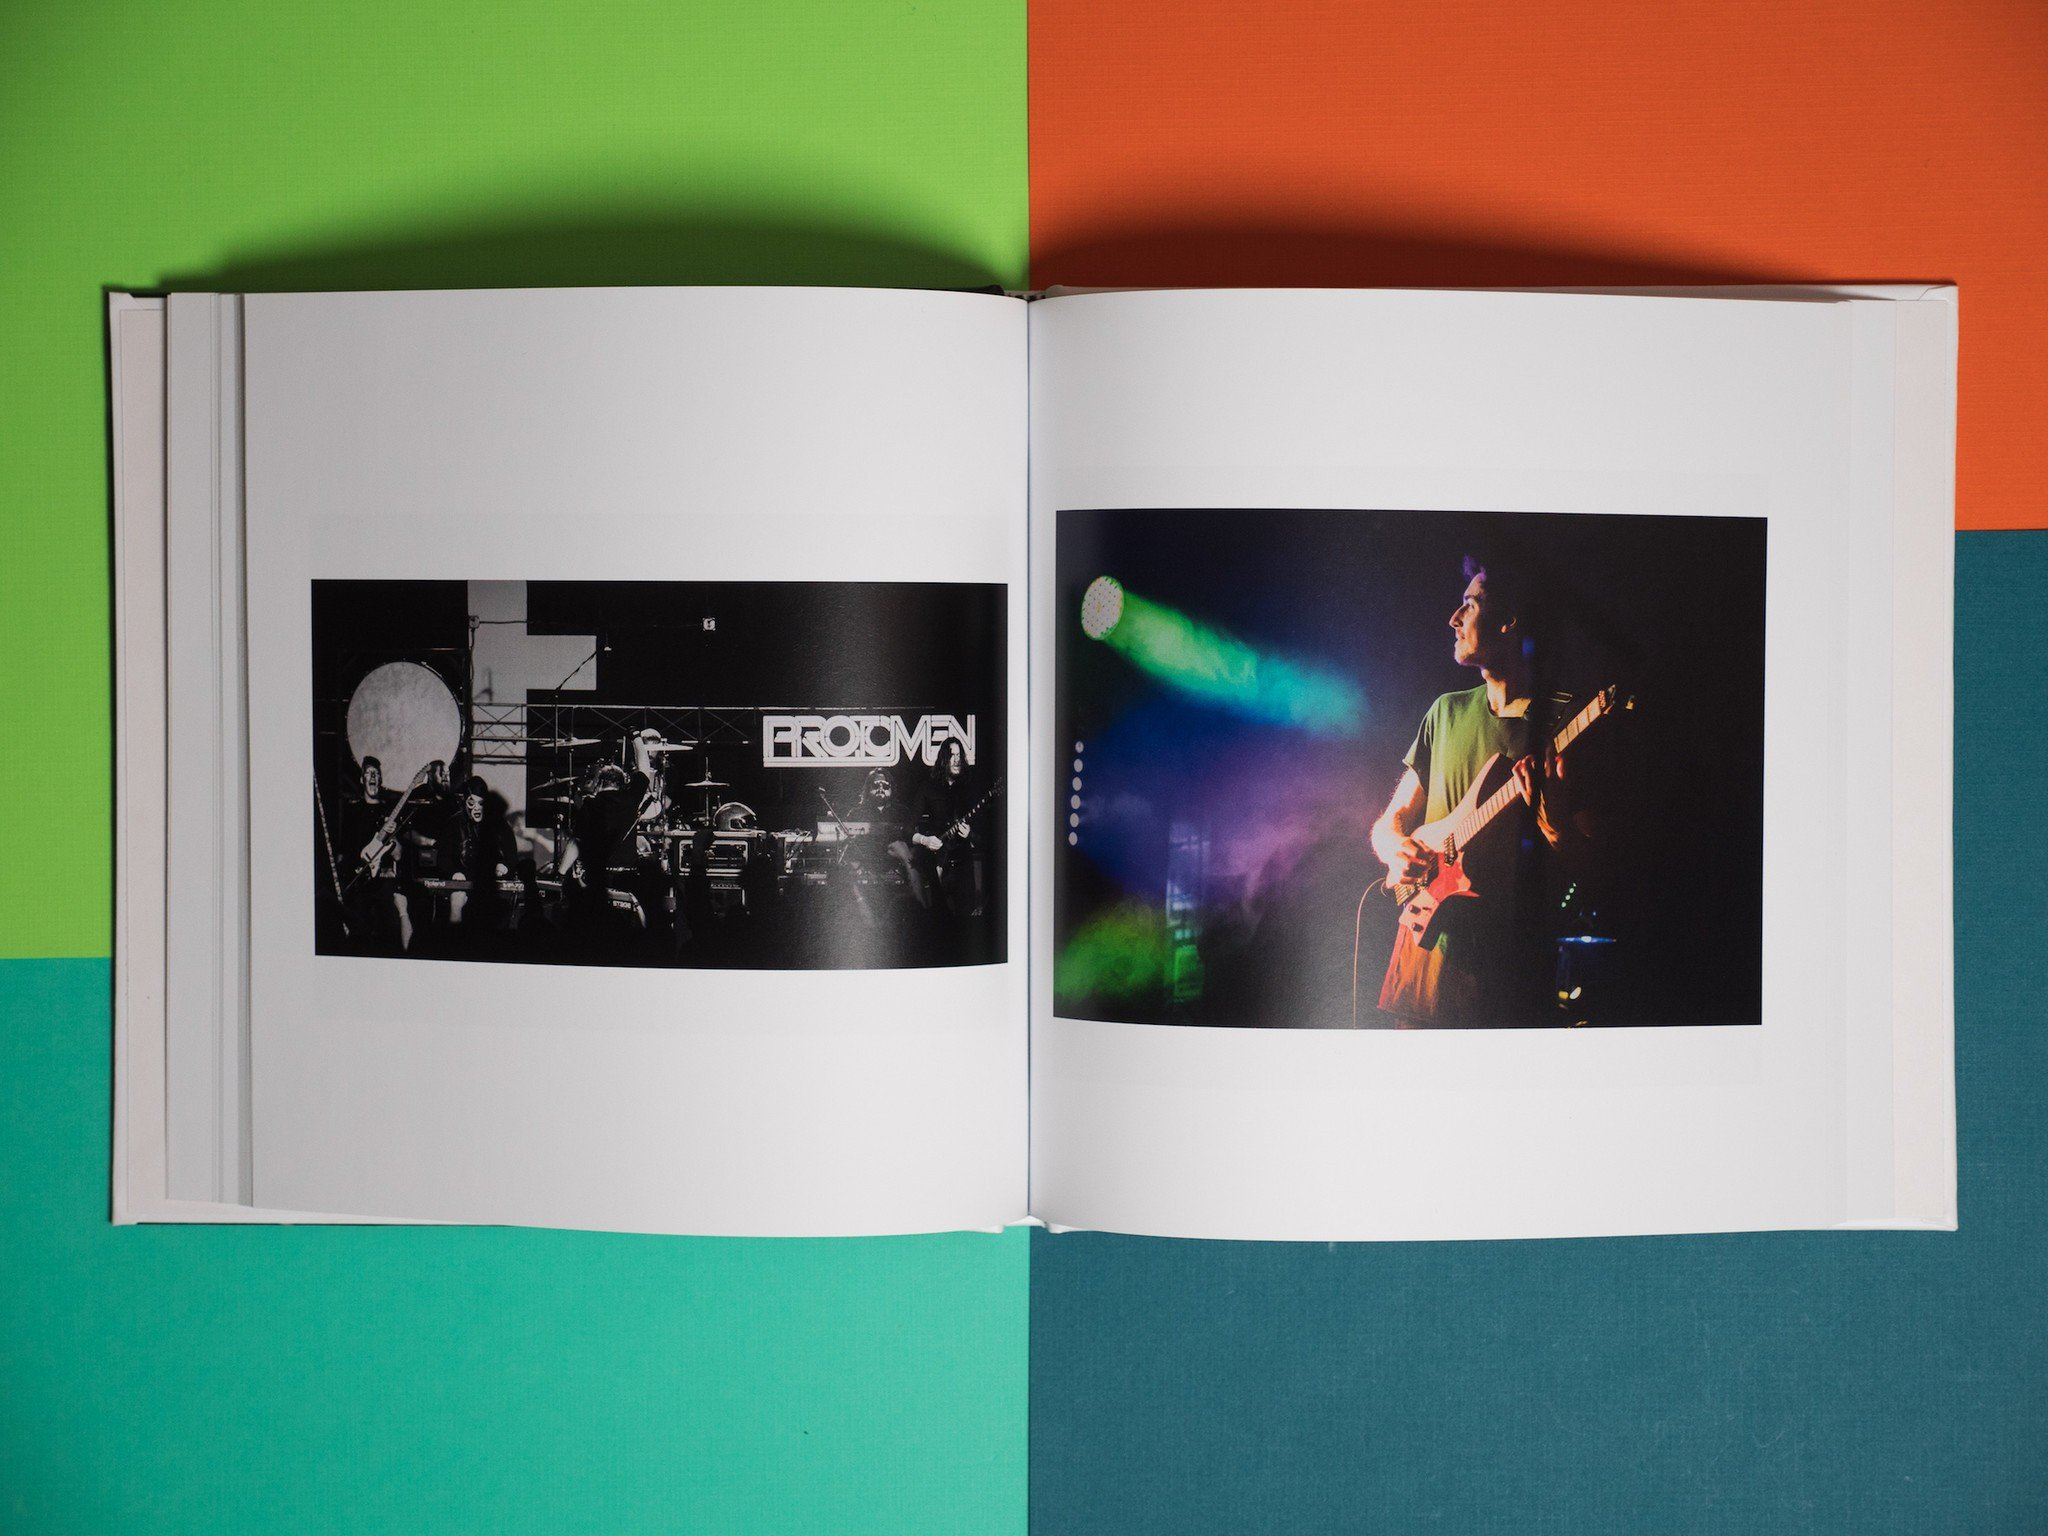 Libros Googles How To Design And Order Google Photo Books Android Central